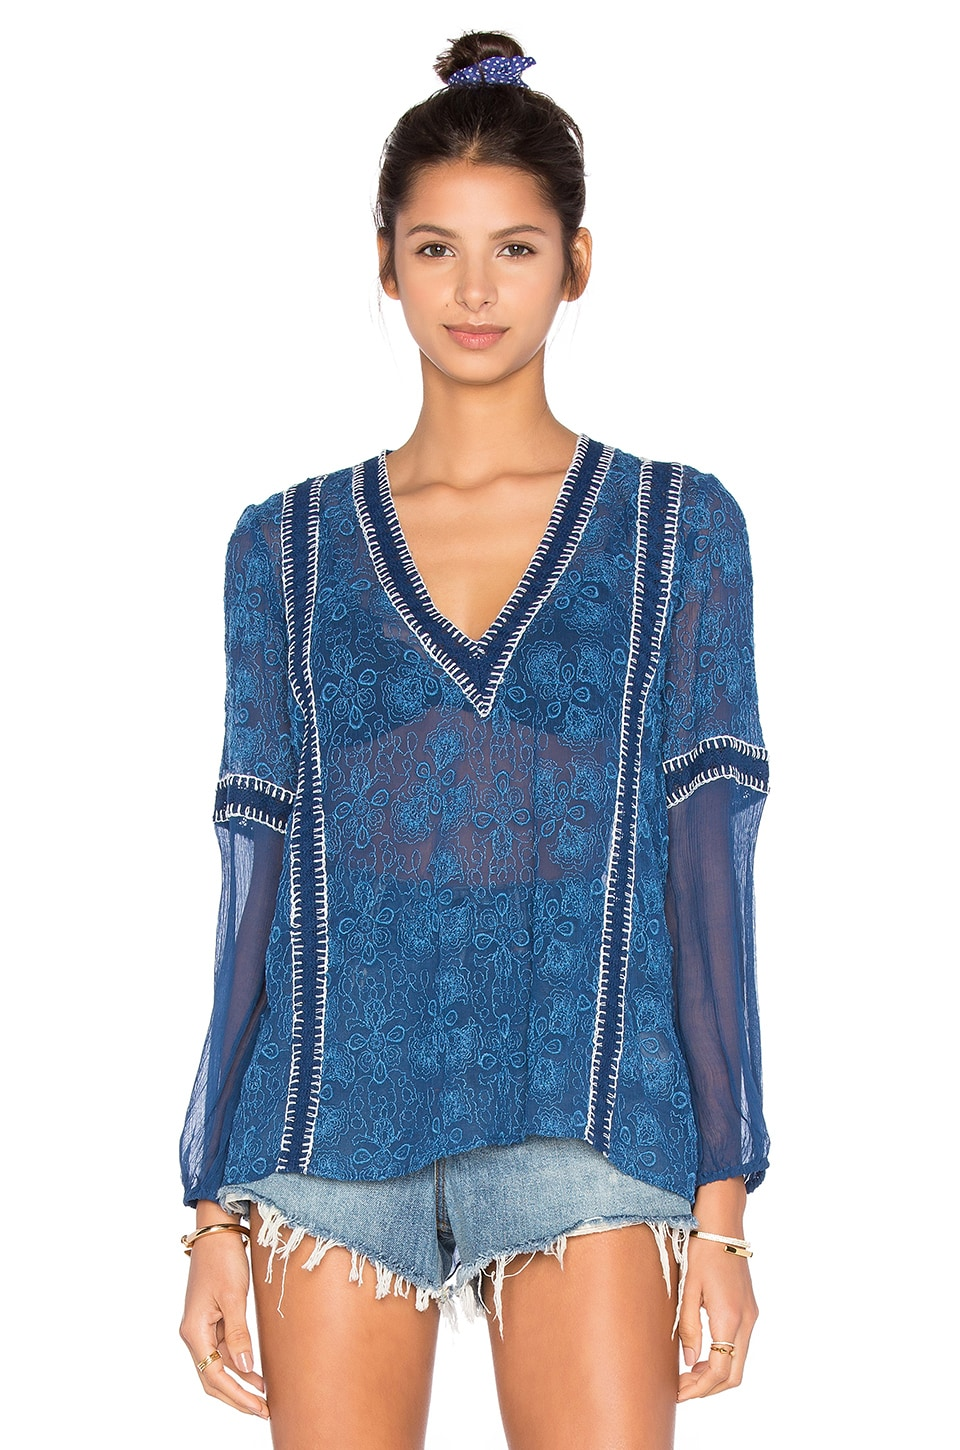 Alice + Olivia Natalya Top in Indigo